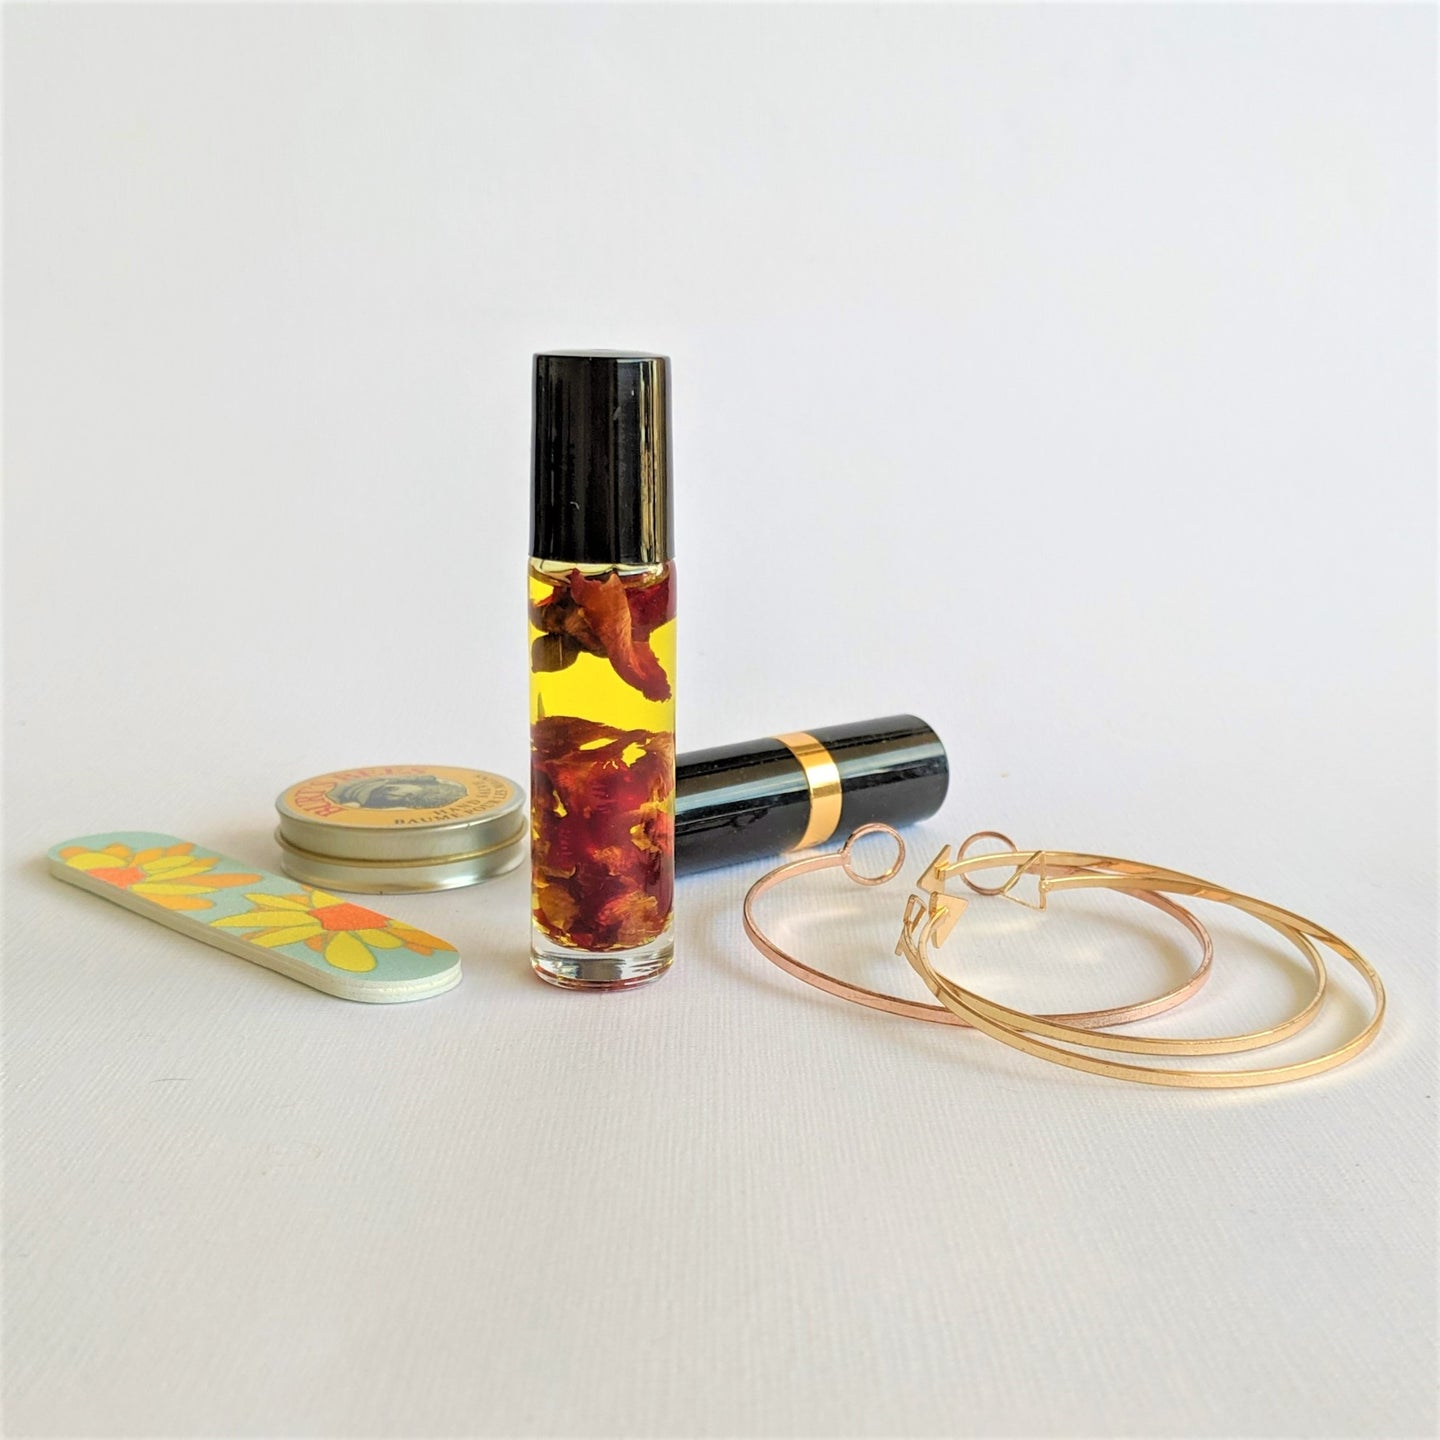 The Swirl Box Rose Essential Oil Roller